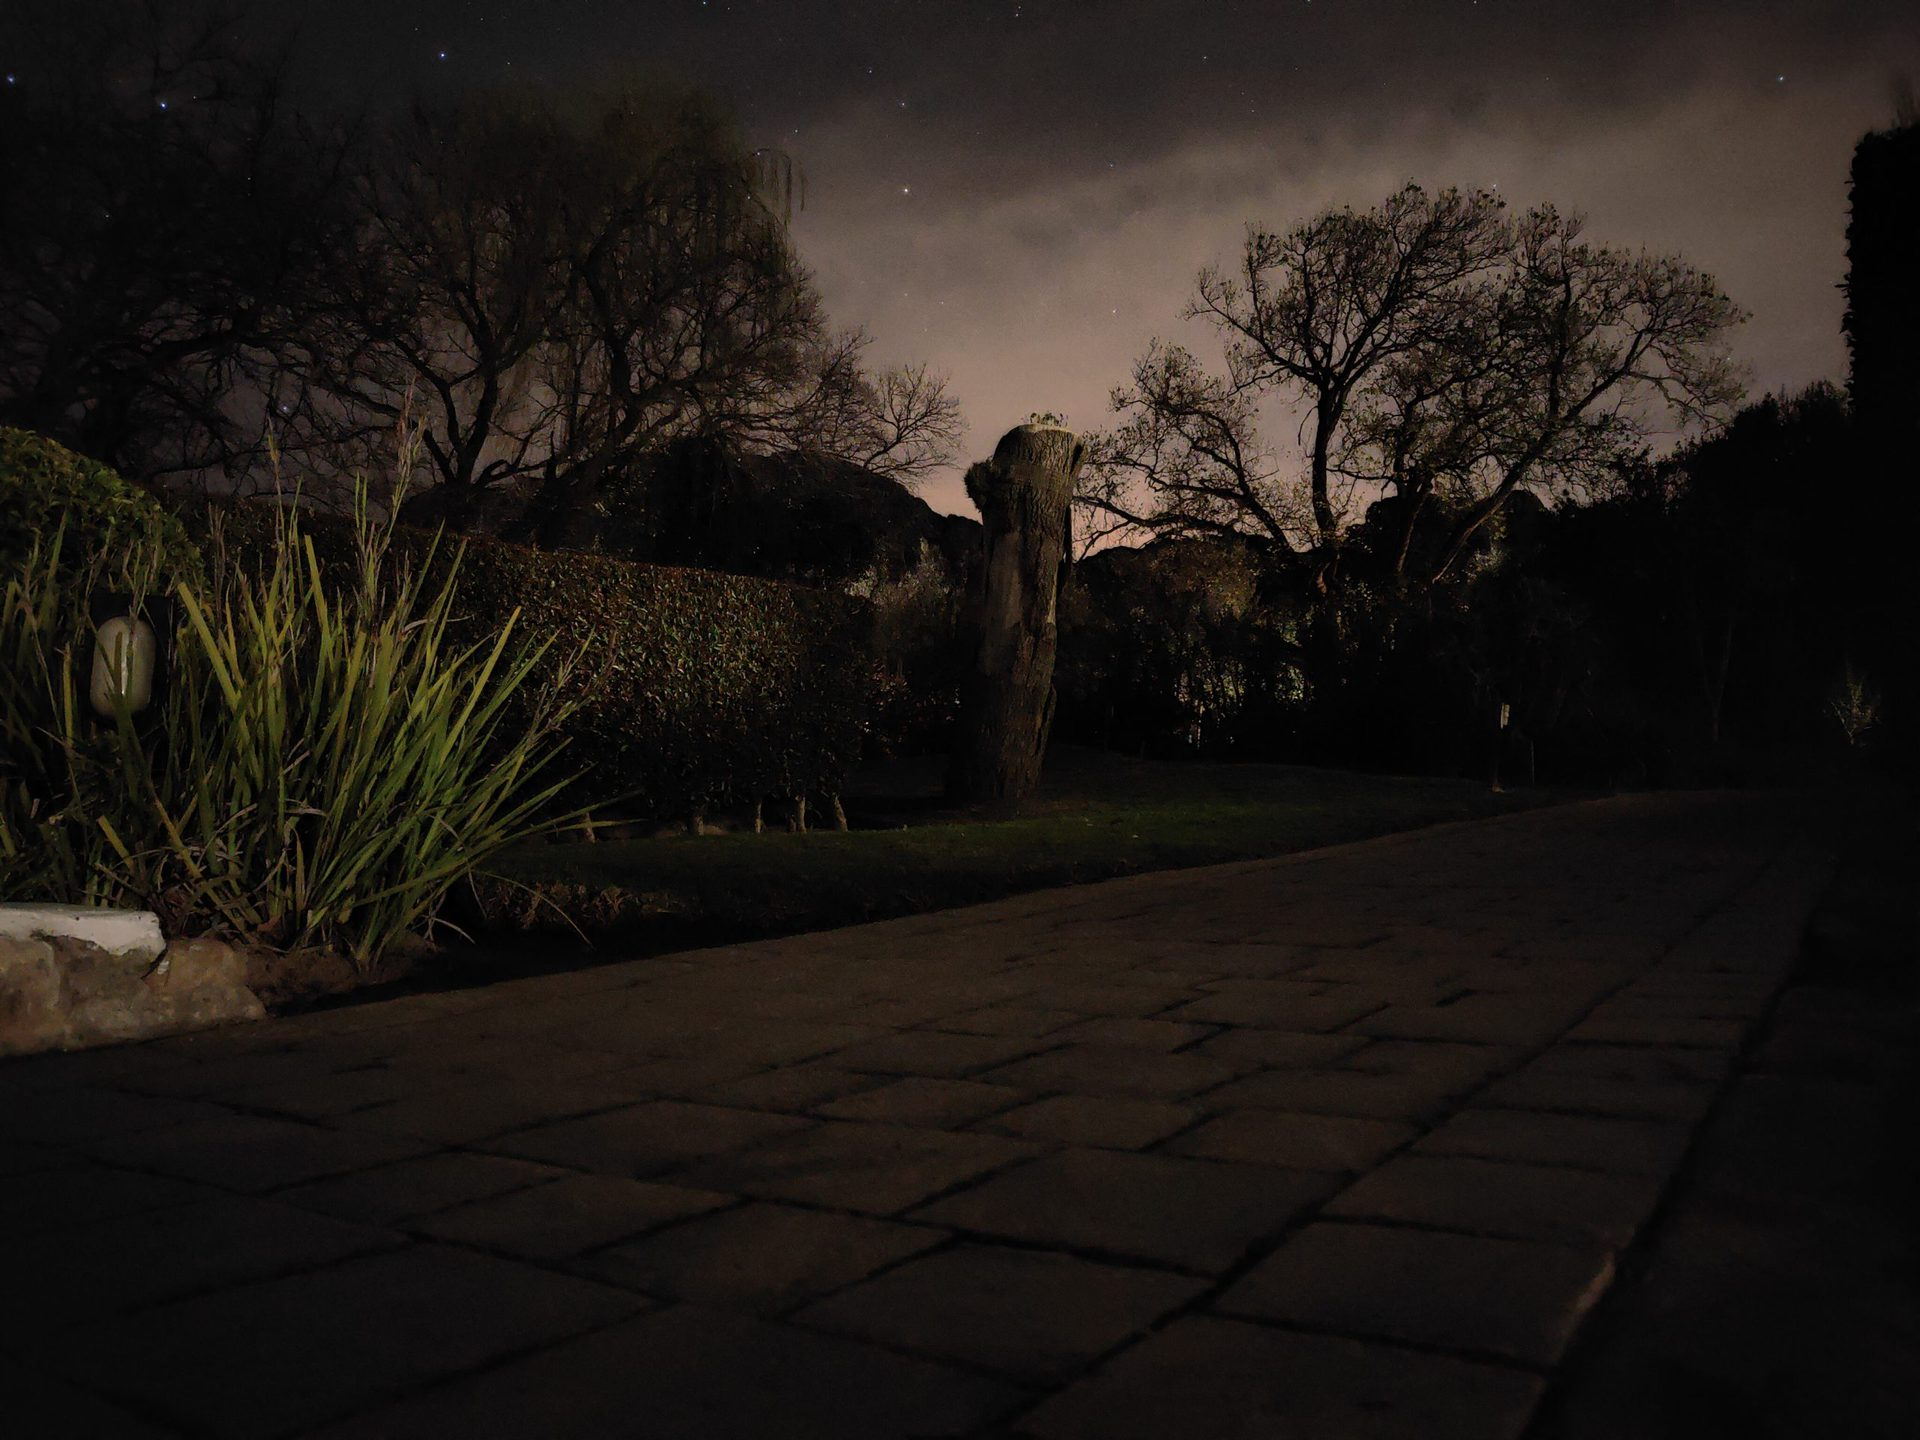 A tripod-mounted shot from the 1x camera in extreme low light.